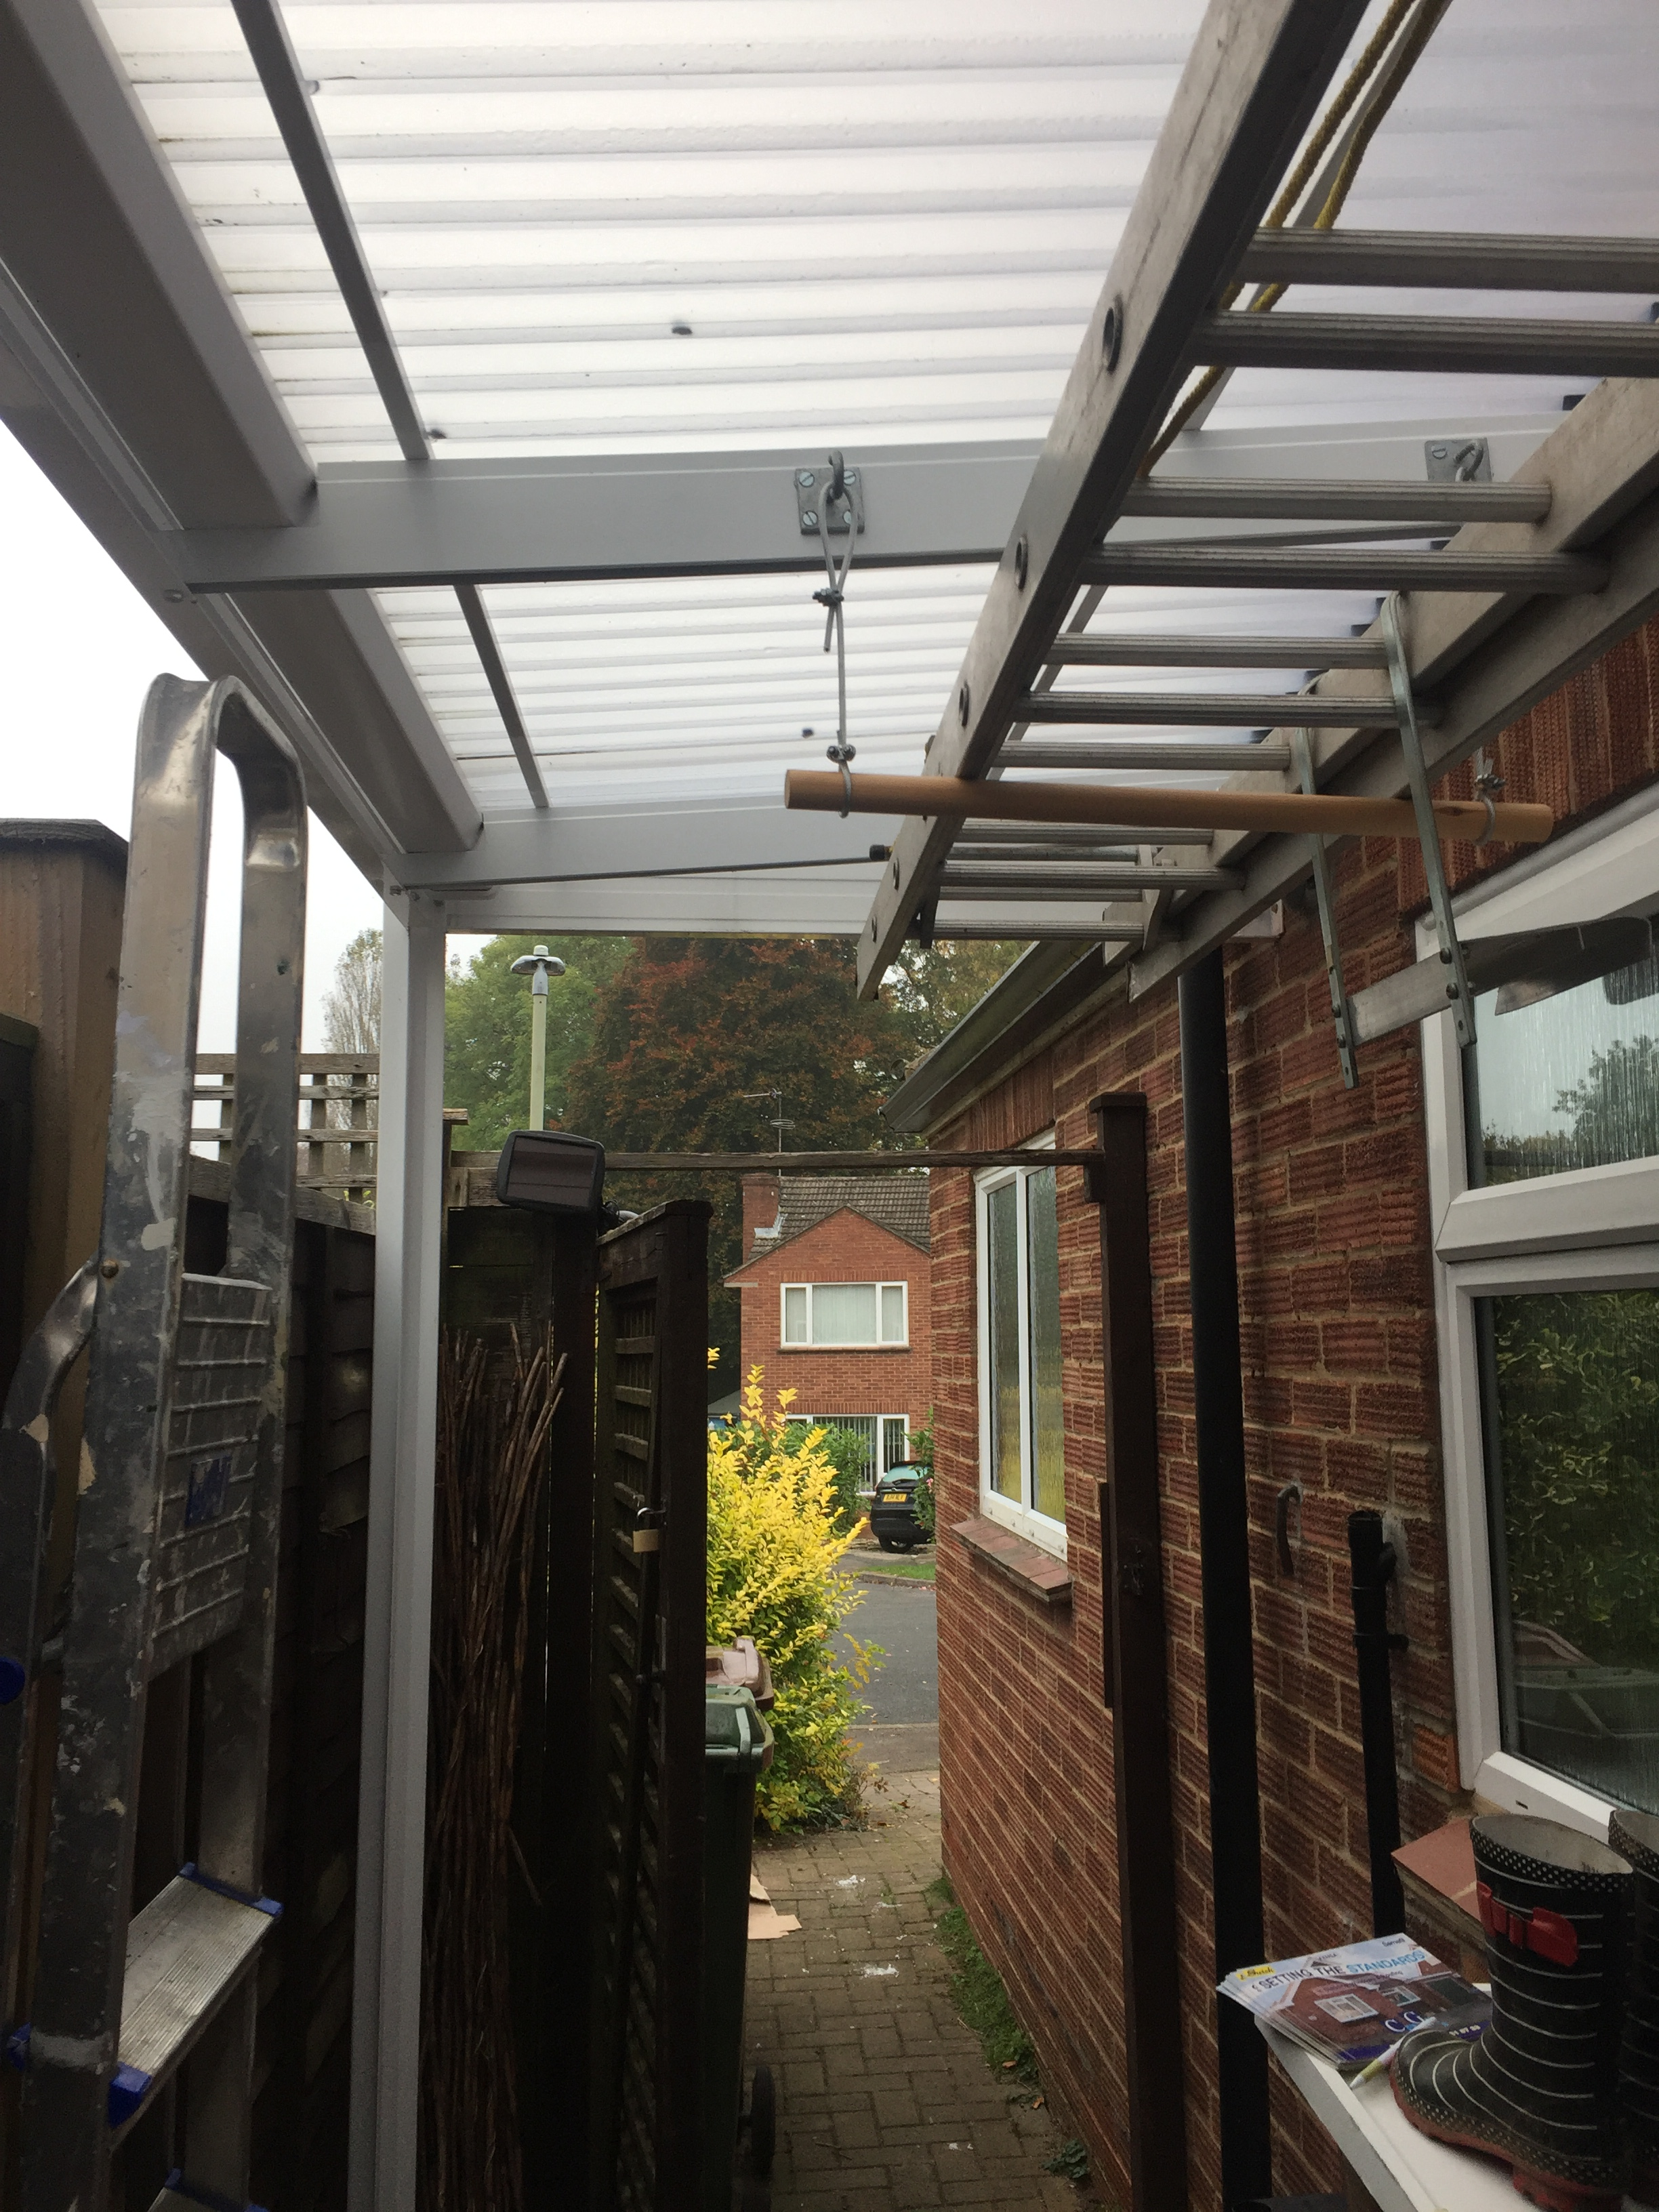 New White Pvcu Double Glazed Windows Amp New Covered Carport